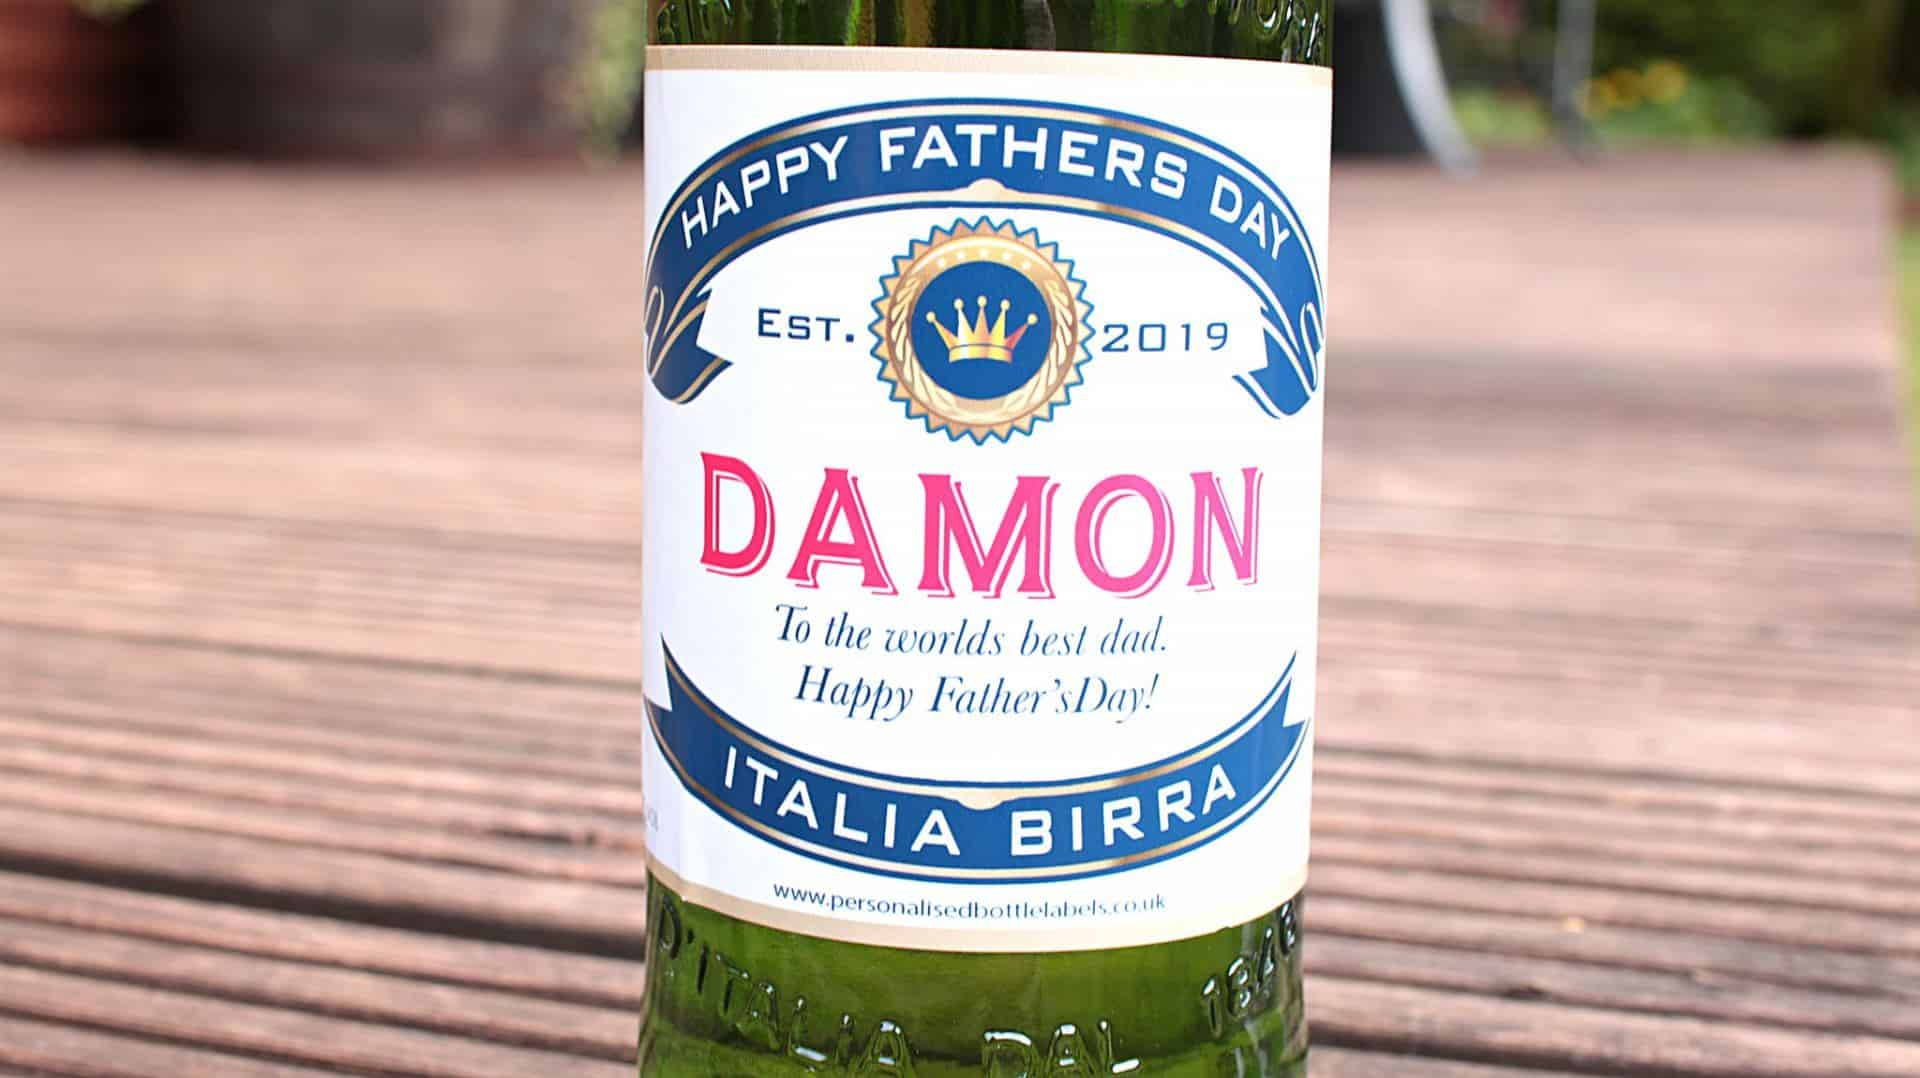 Personalised bottle of Peroni with the name 'Damon' followed by a heartfelt message reading 'To the world's greatest Dad'